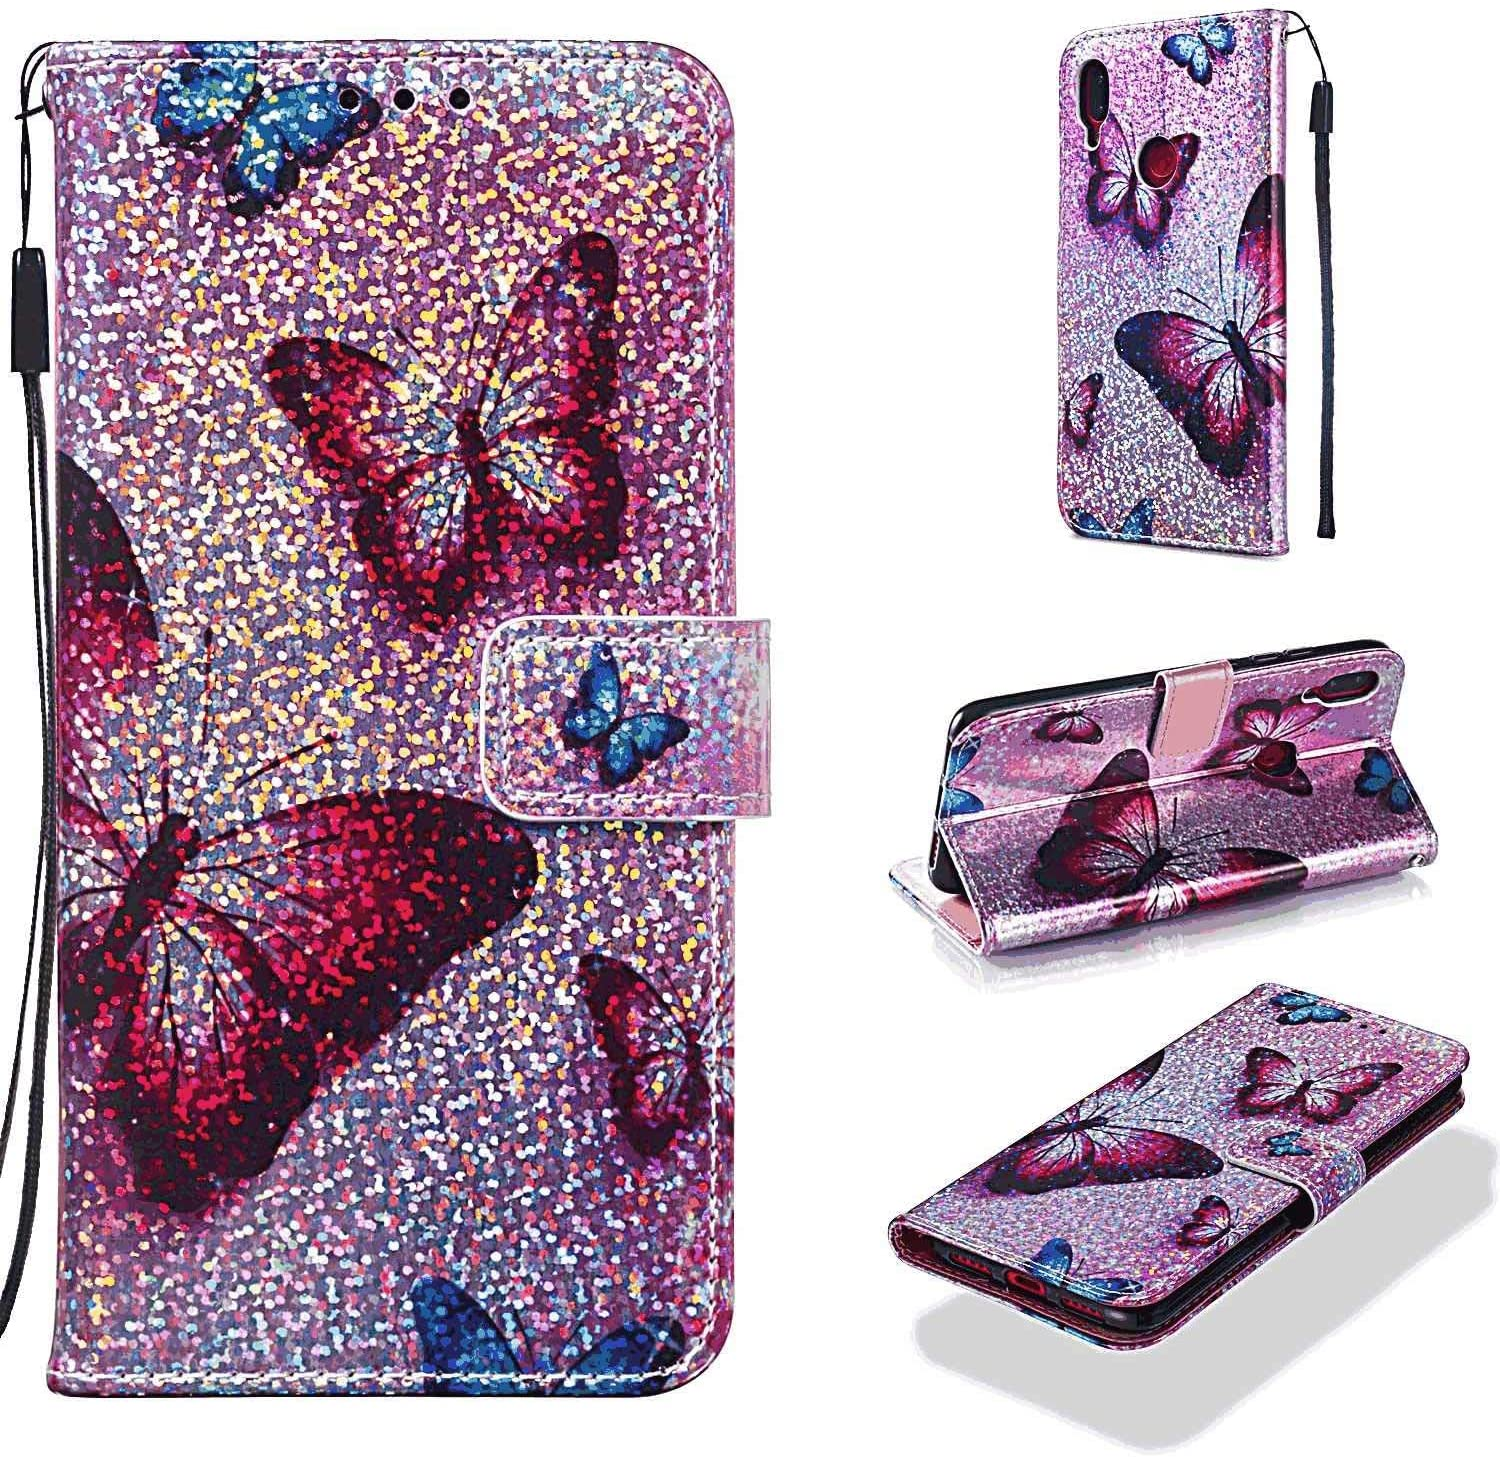 Cover for Leather Card Holders Extra-Protective Business Kickstand Cell Phone case Flip Cover iPhone 7 Flip Case